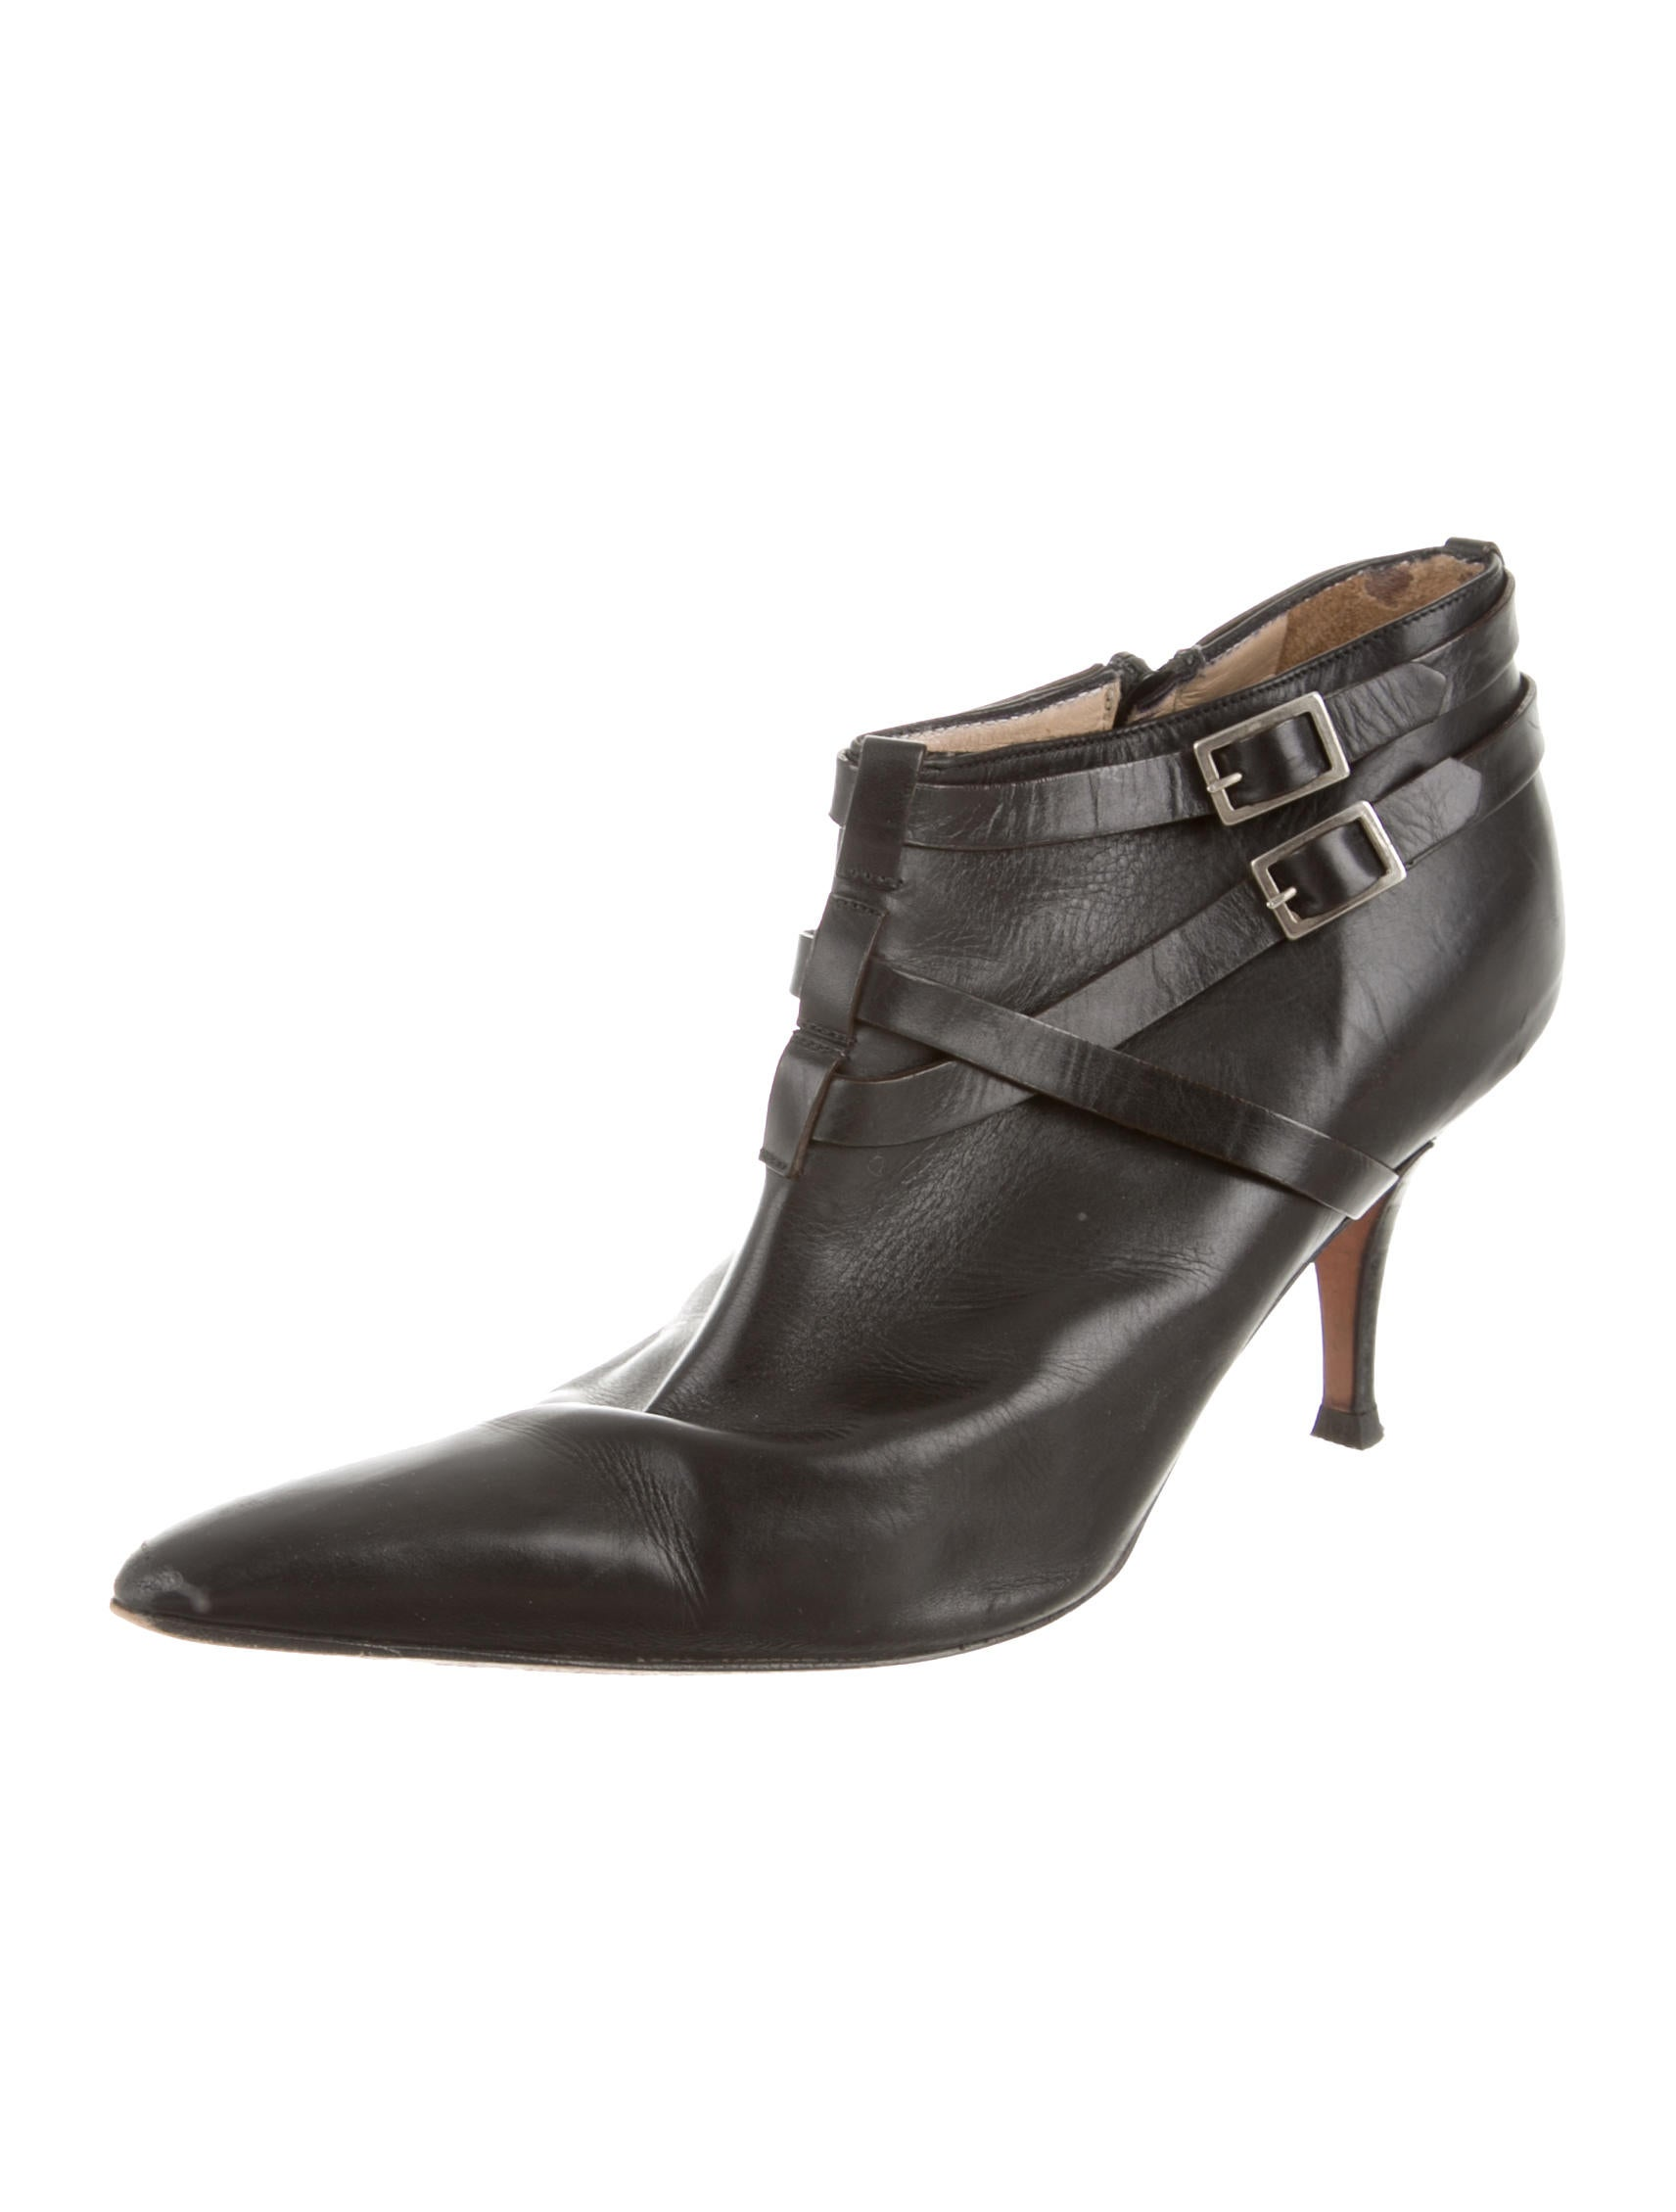 Manolo Blahnik Pointed-Toe Ankle Boots - Shoes - MOO40632 ...